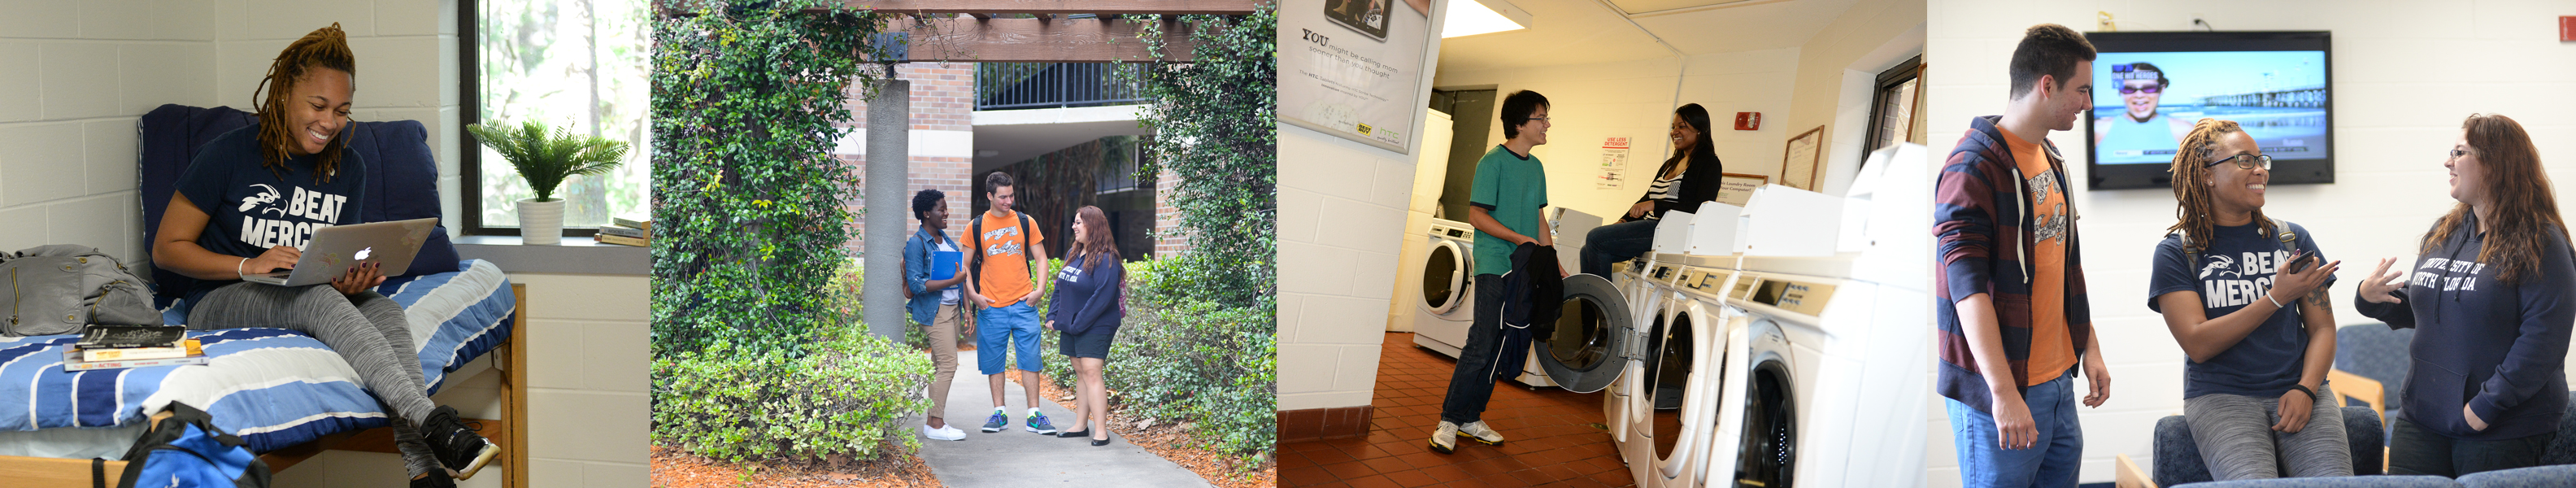 four scenes-a dorm room, greenery outside, laundry room, break room